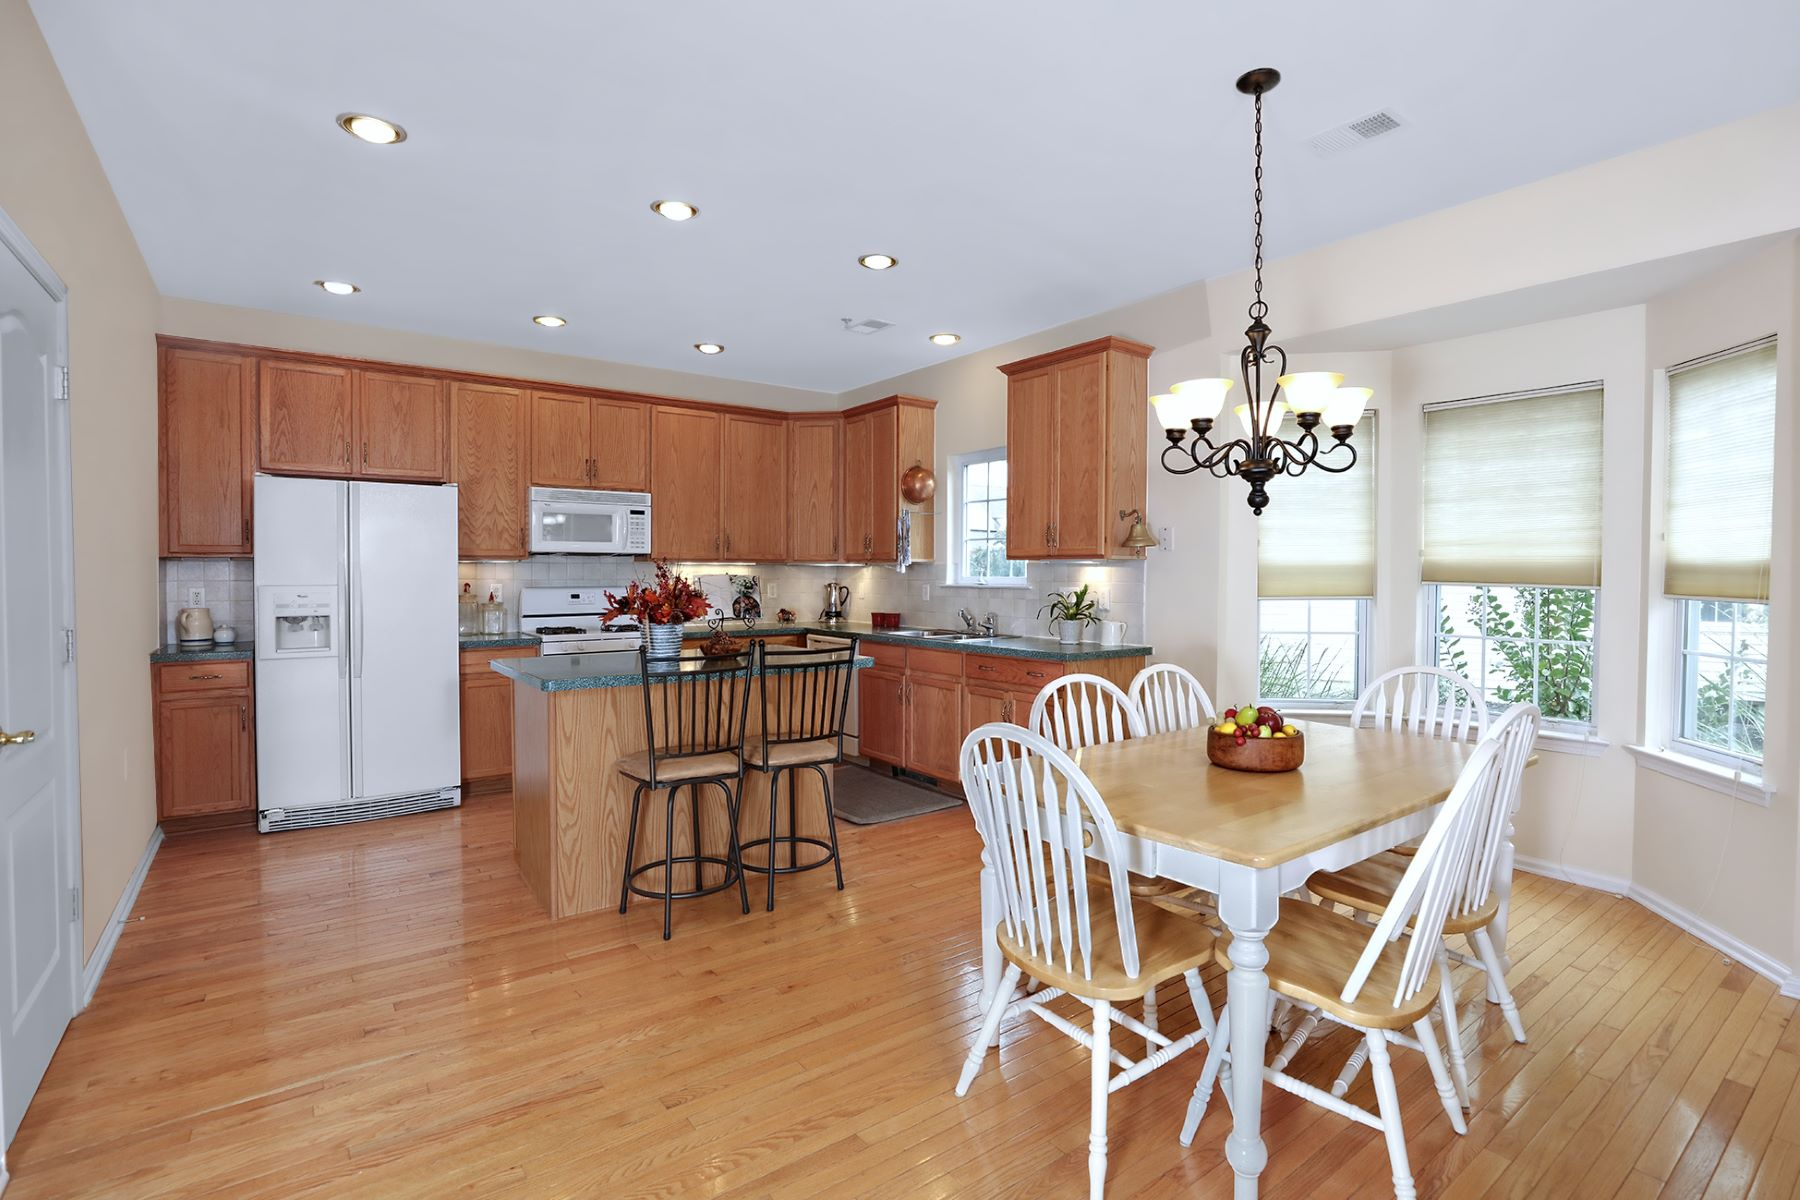 Additional photo for property listing at Lovely Home in Village Grande with Basement 55 Globeflower Lane, Princeton Junction, New Jersey 08550 United States